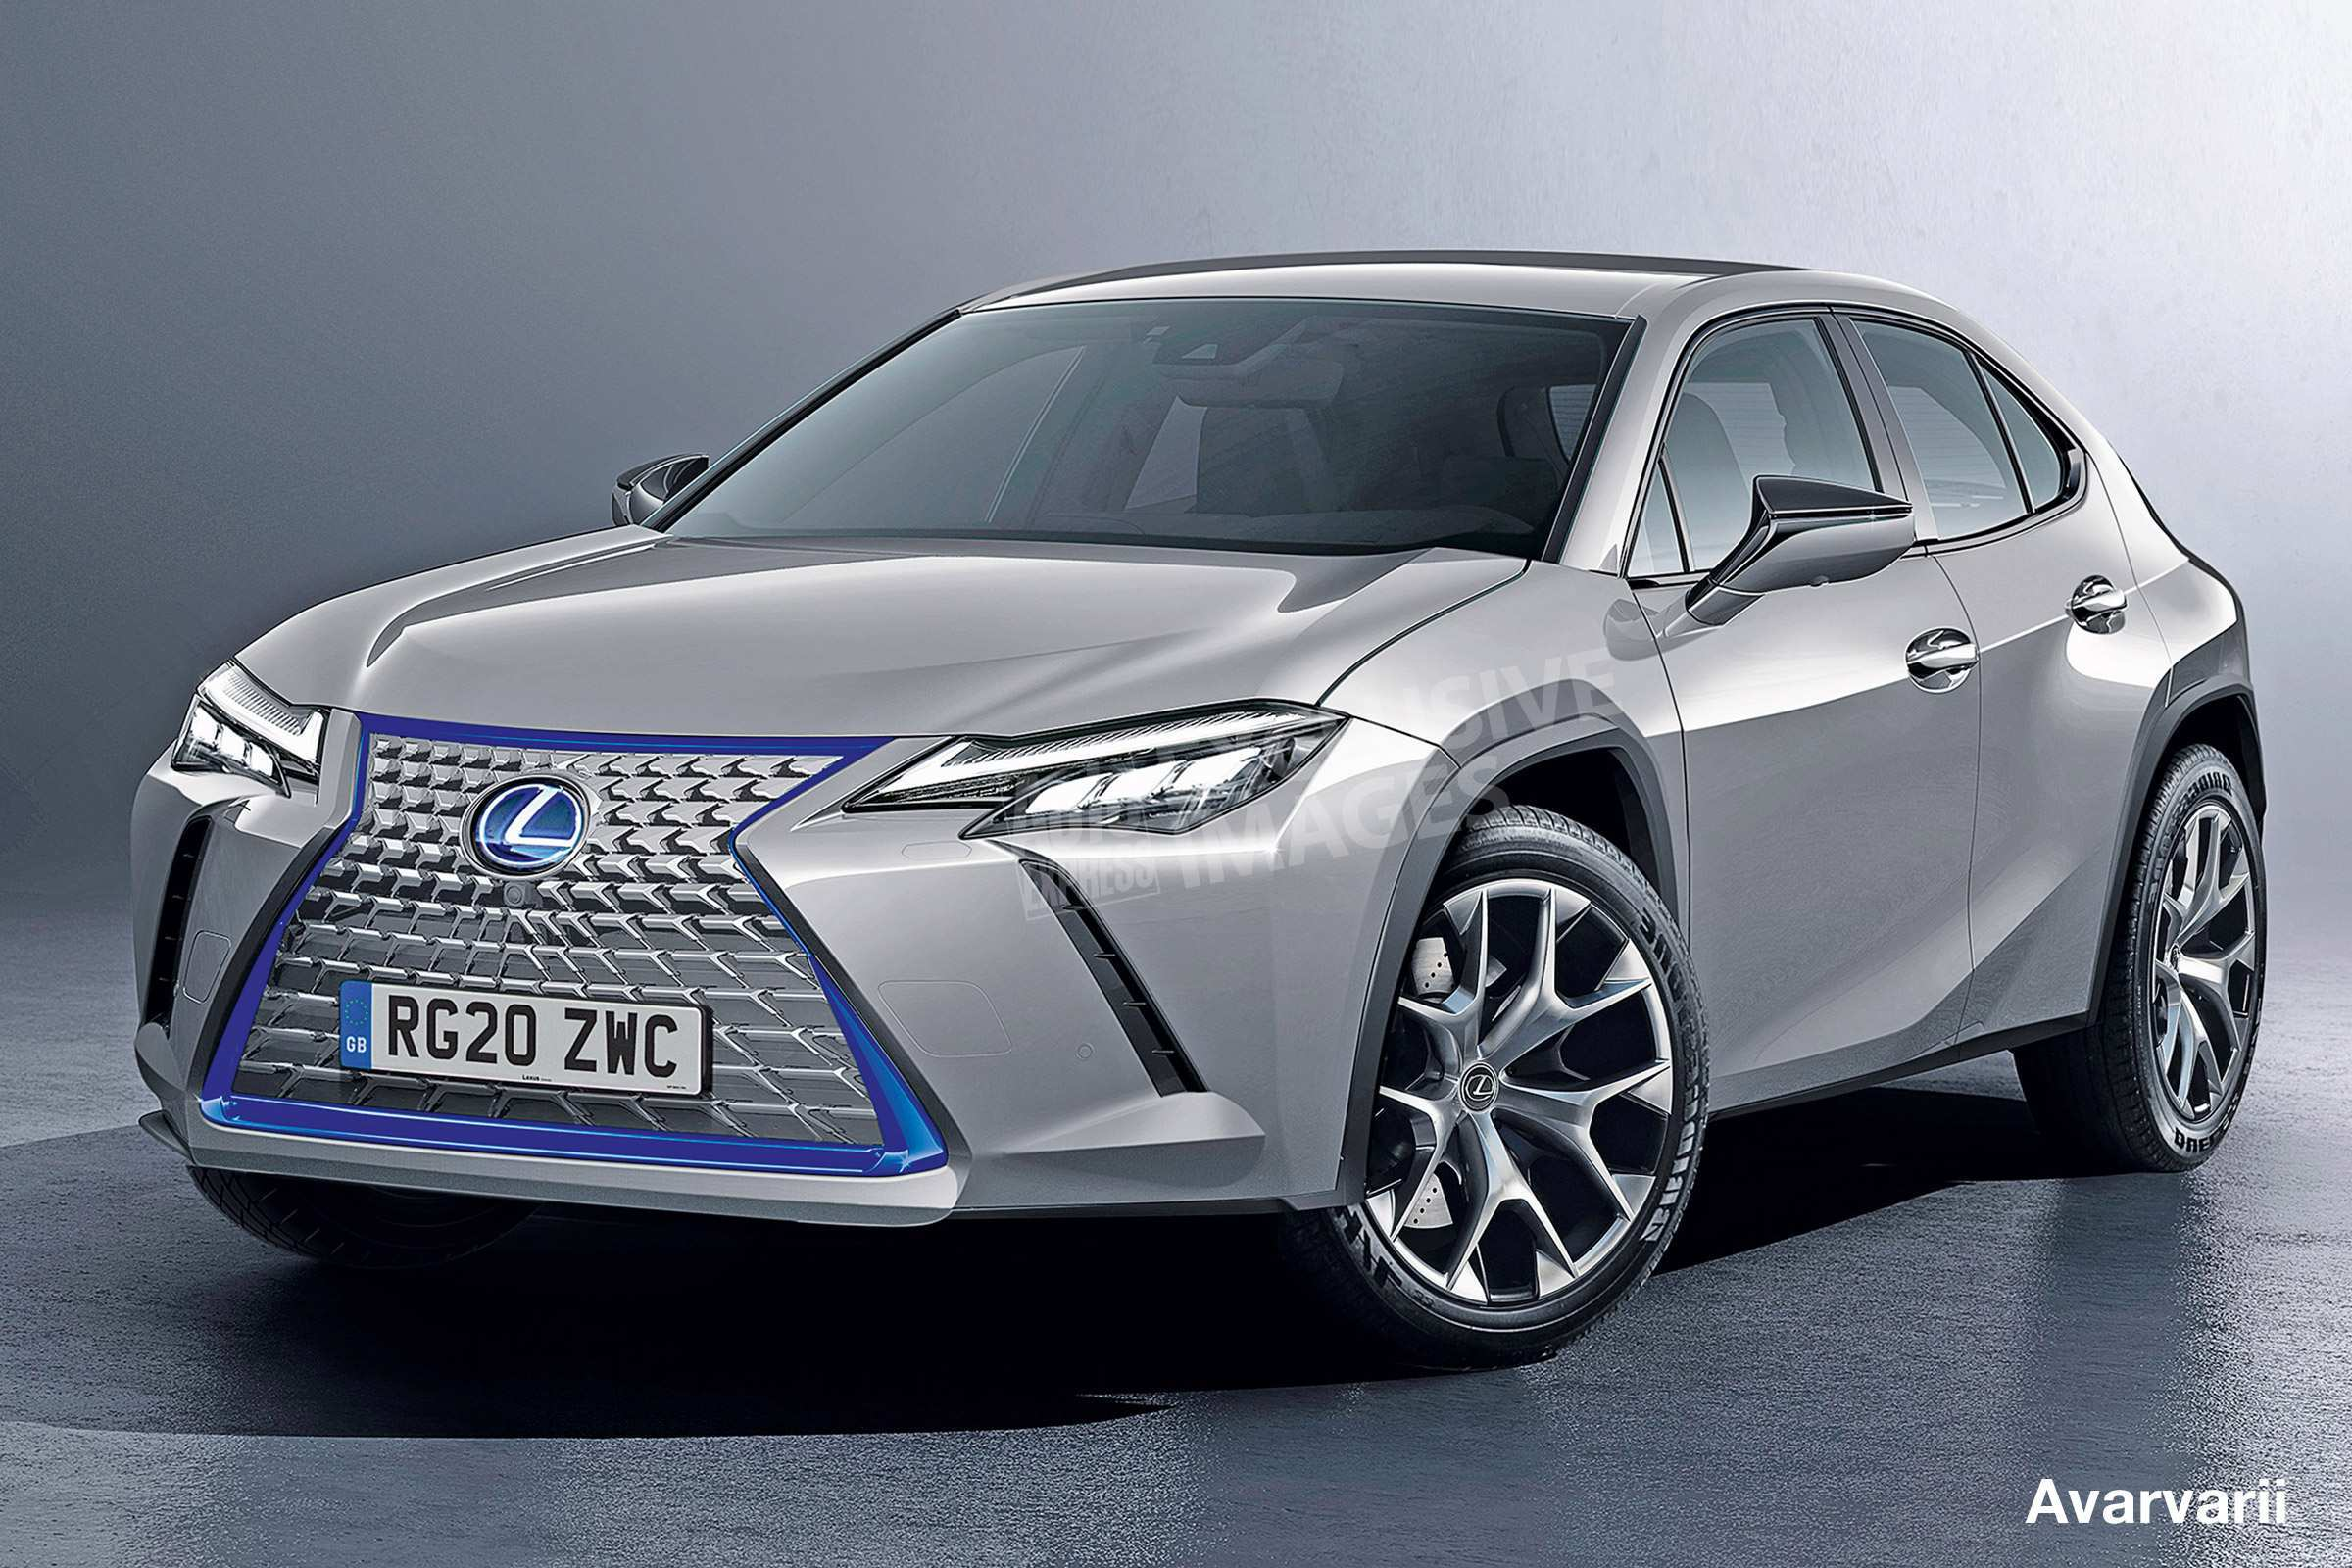 11 All New When Lexus 2020 Come Out Speed Test for When Lexus 2020 Come Out